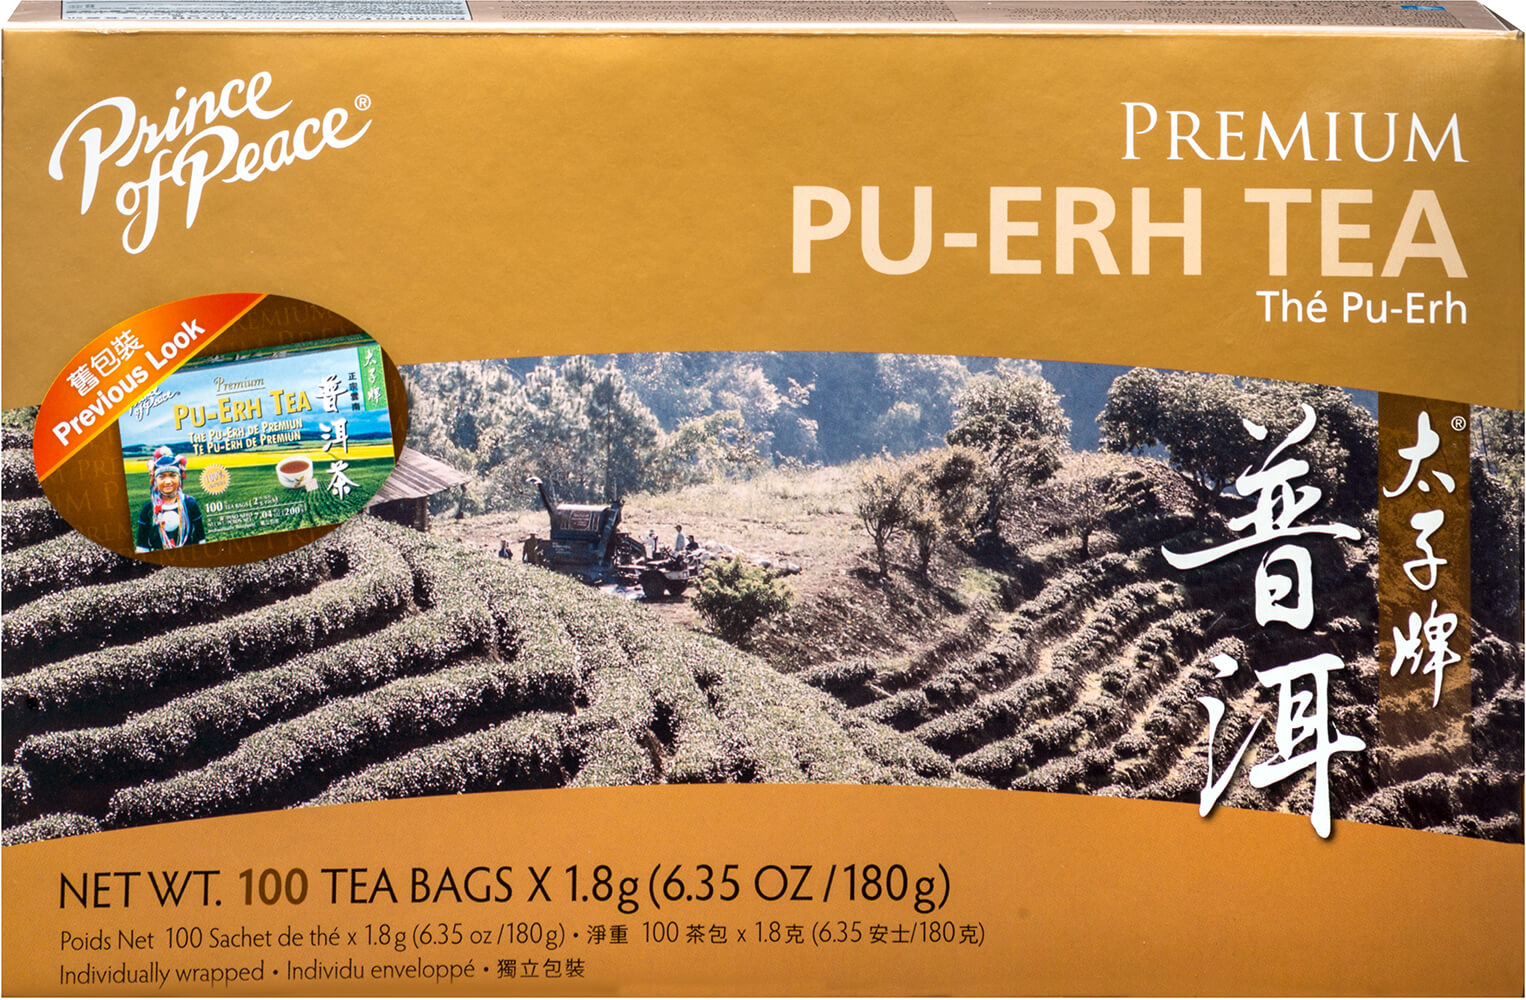 Premium Pu-Erh Tea Thumbnail Alternate Bottle View